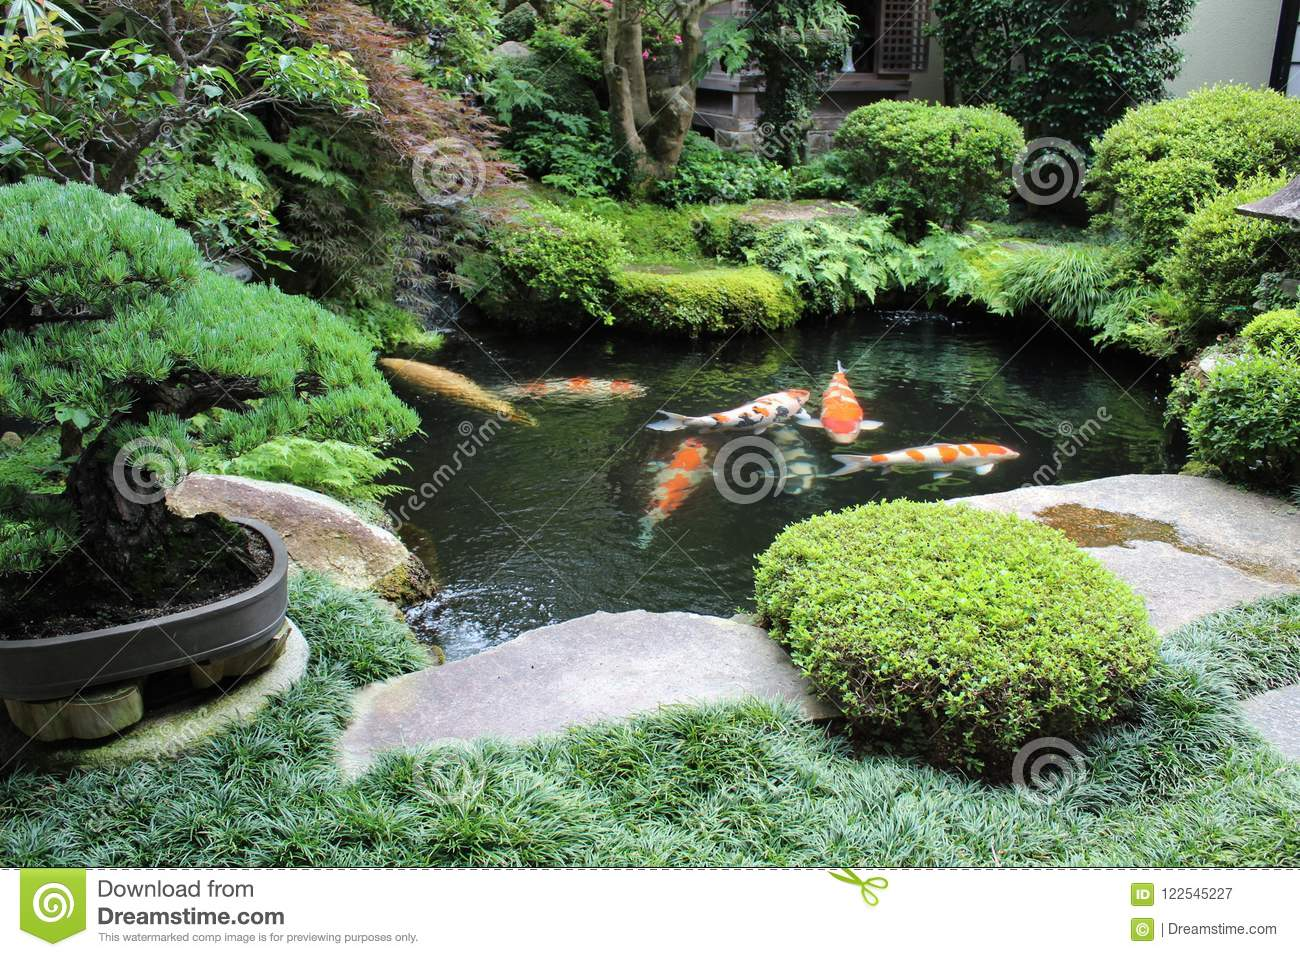 Colorful carps in a japanese garden house & Colorful Carps In A Japanese Garden House Stock Image - Image of ...